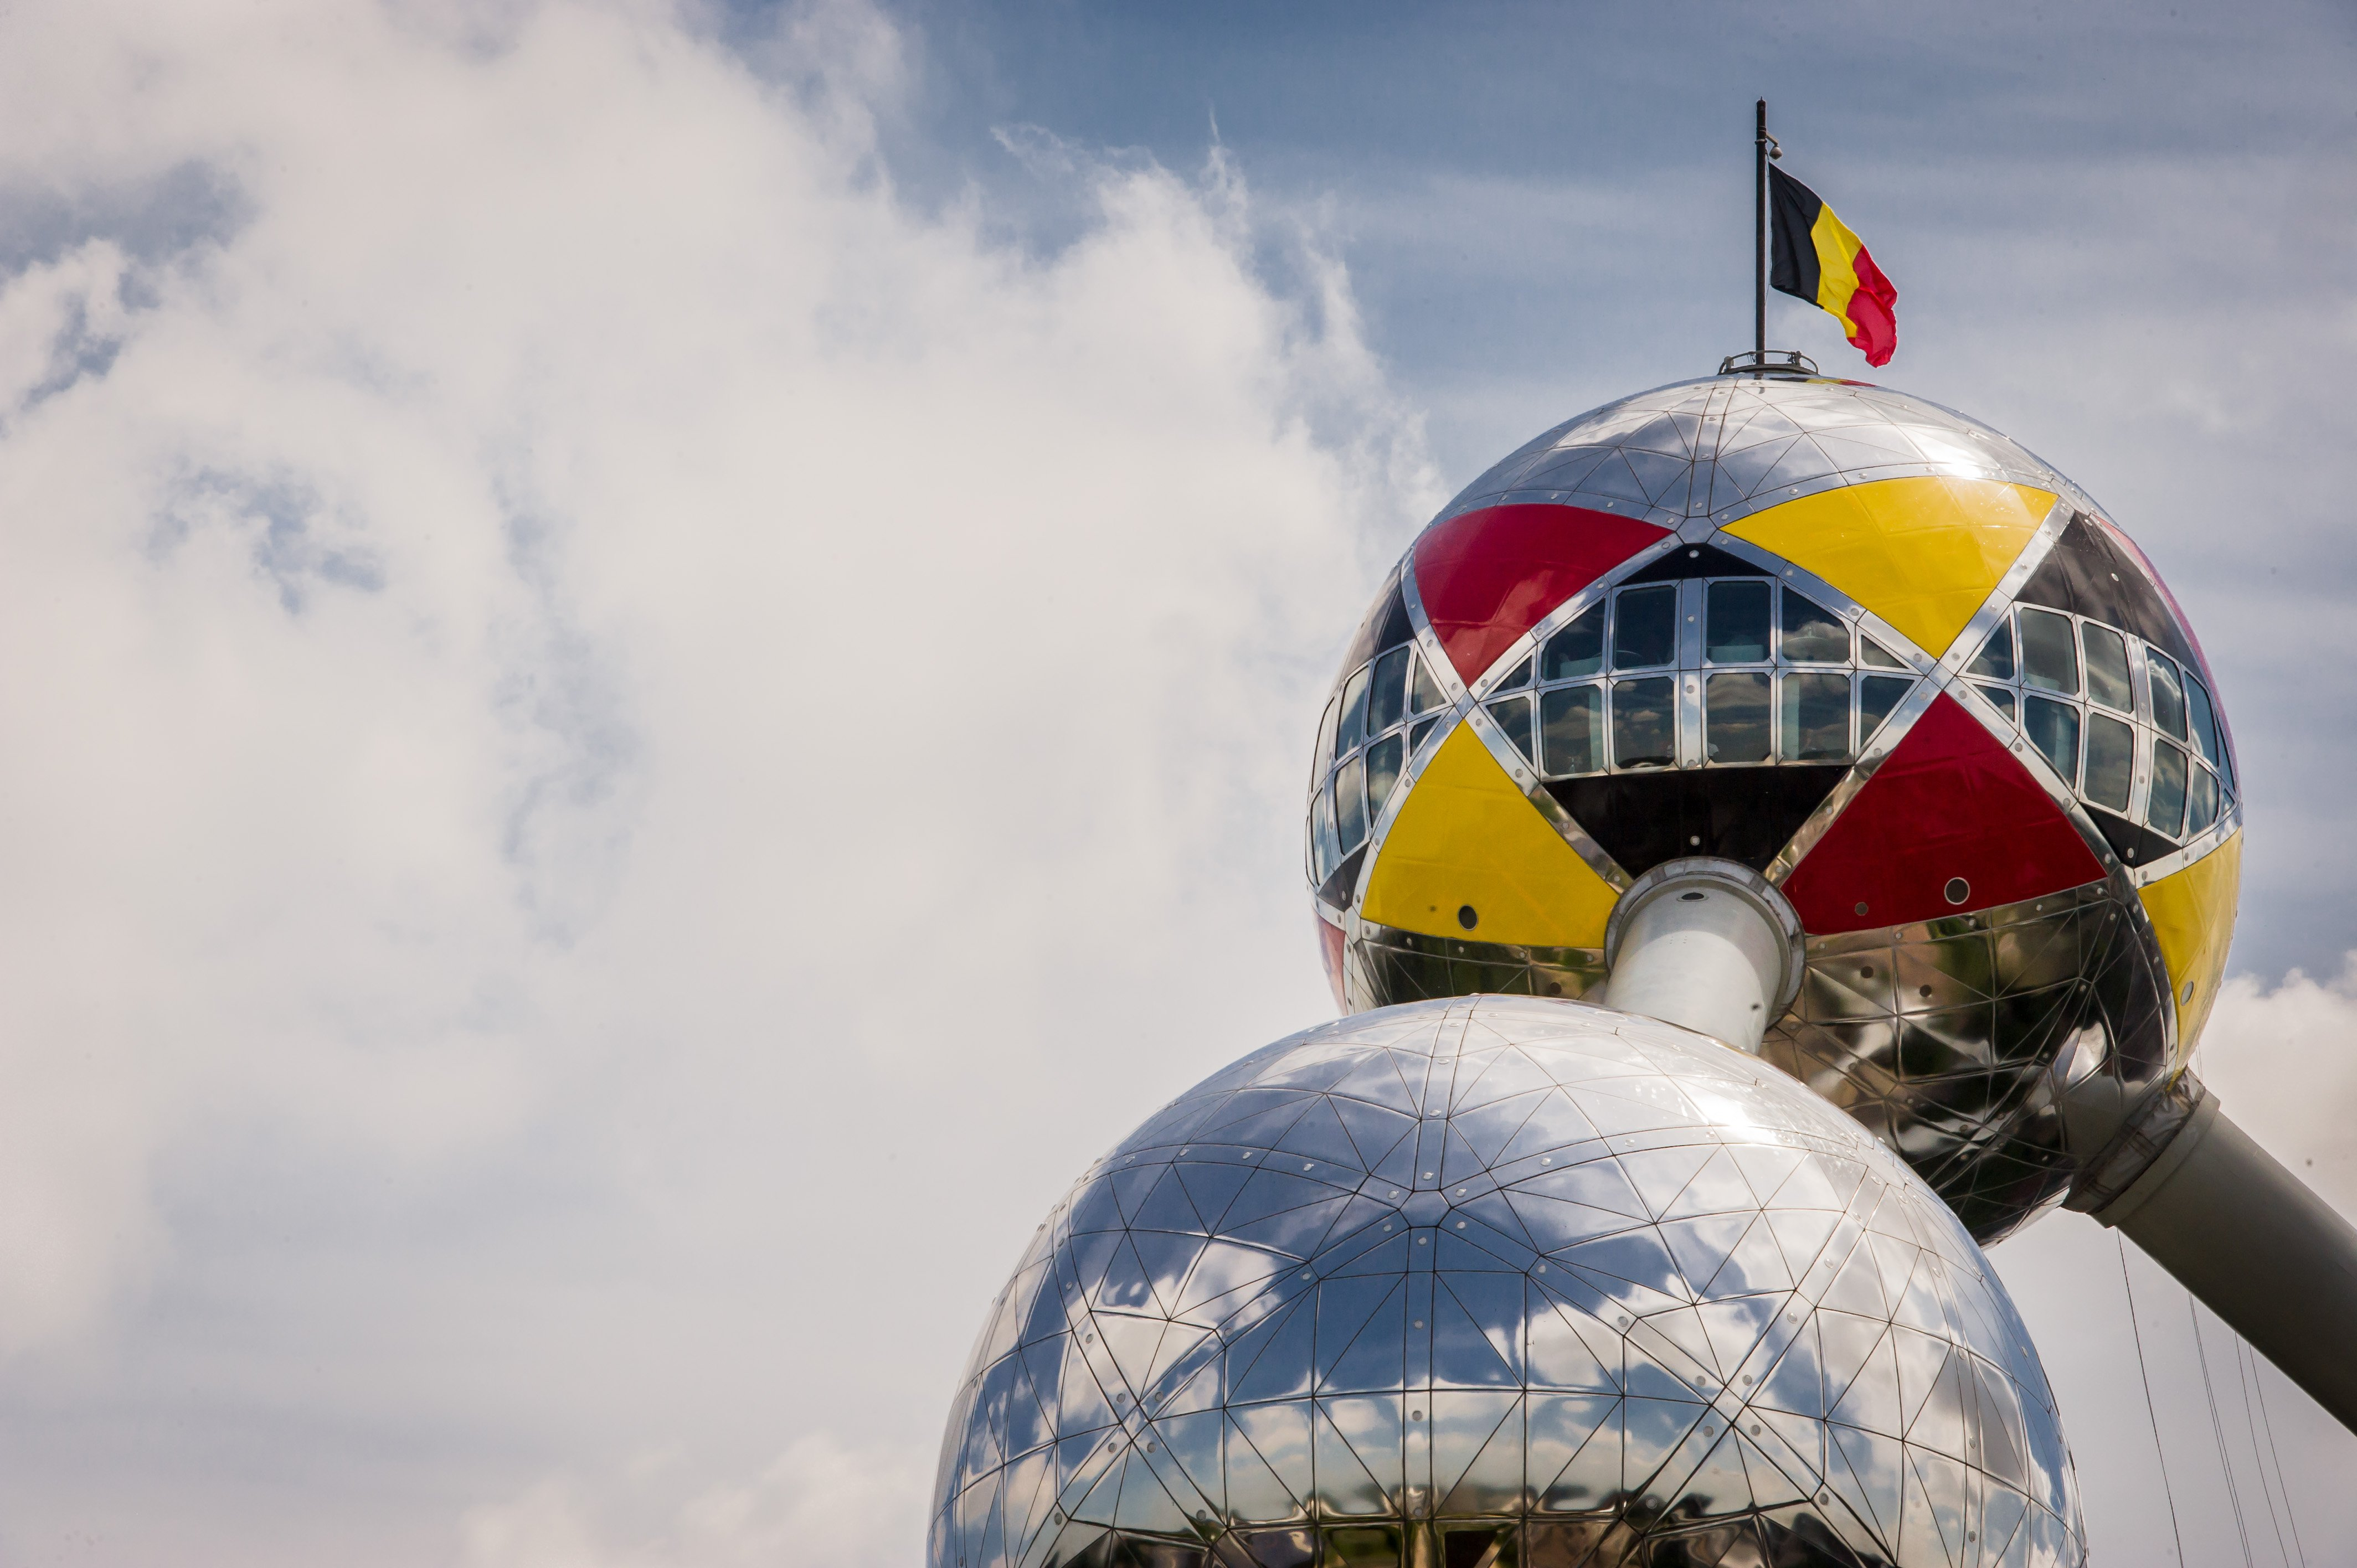 The upper sphere of the Atomium in Brussels is wrapped with the Belgian colors to support the Belgian national soccer team at the World Cup soccer in Brazil on June 13, 2014.